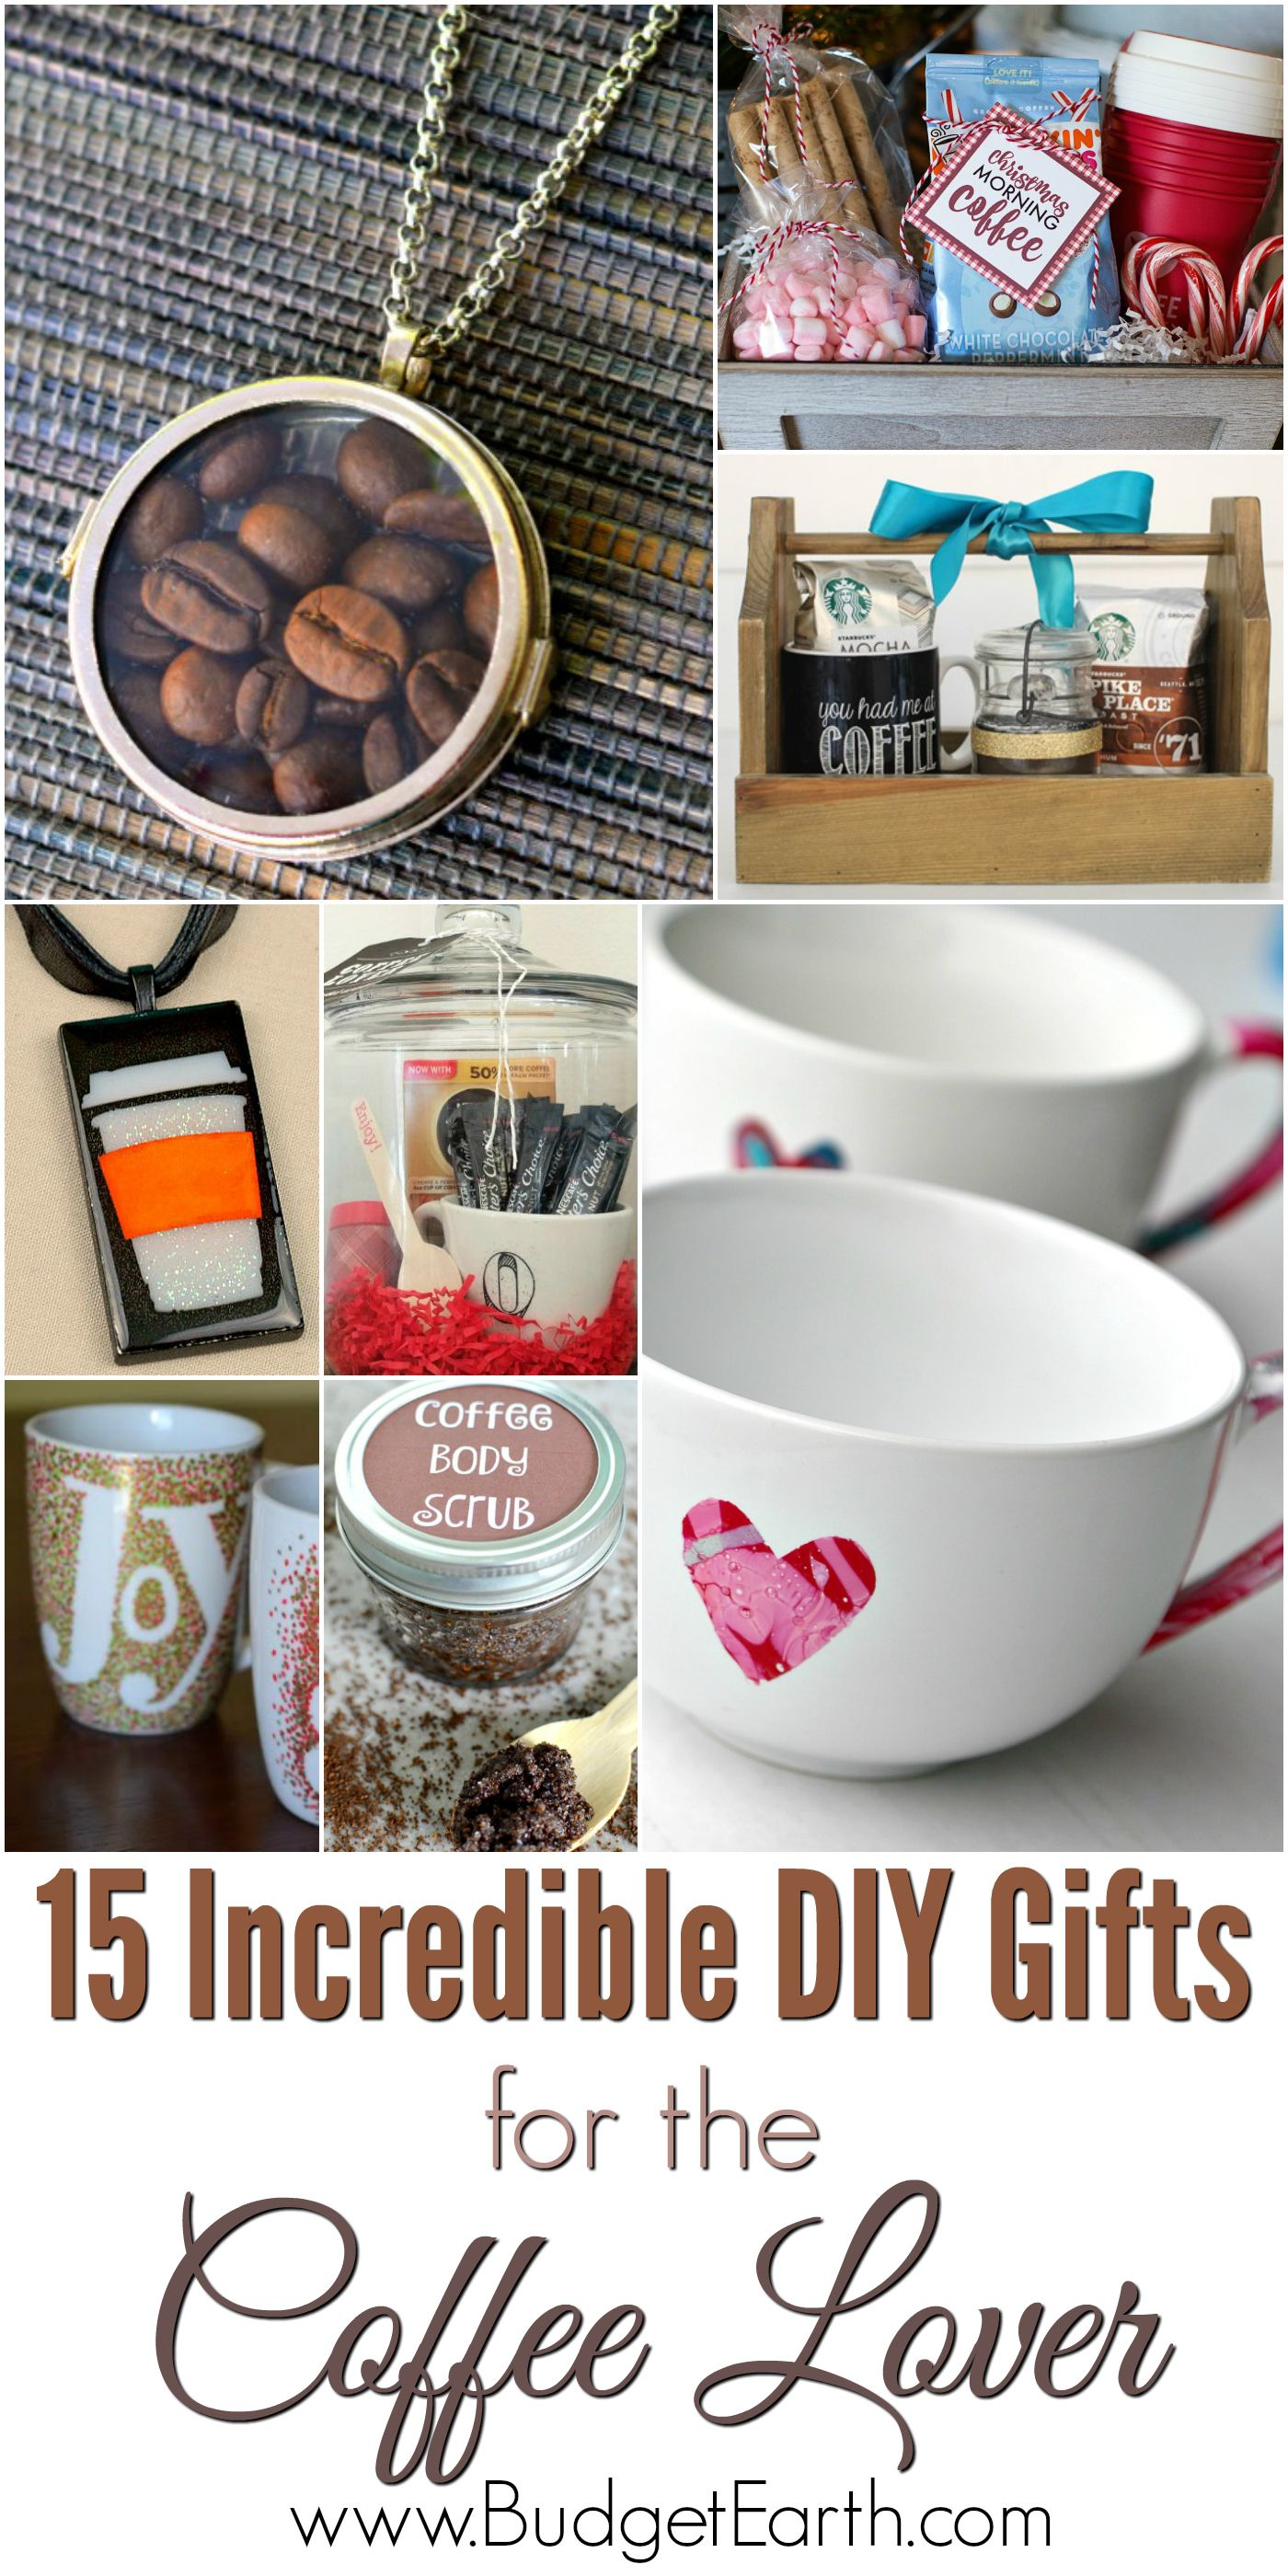 15 Incredible Diy Gifts For The Coffee Lover Coffee Gifts Coffee Lover Gifts Coffee Gifts Diy